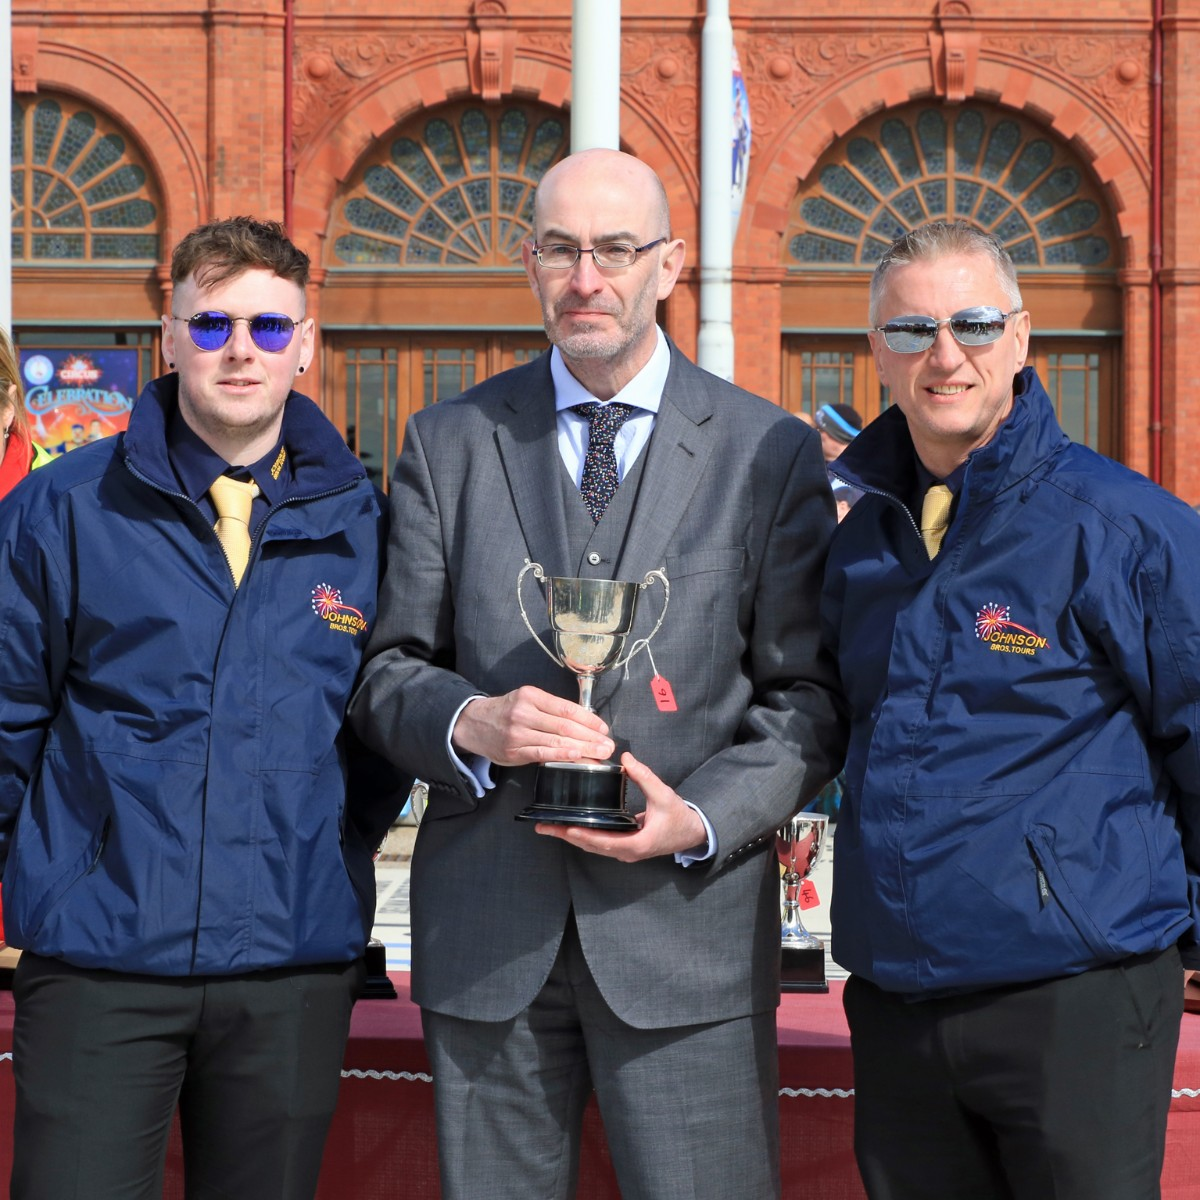 Rita Dalziel Trophy for top coach aged 25 years or older - Johnson Bros Tours